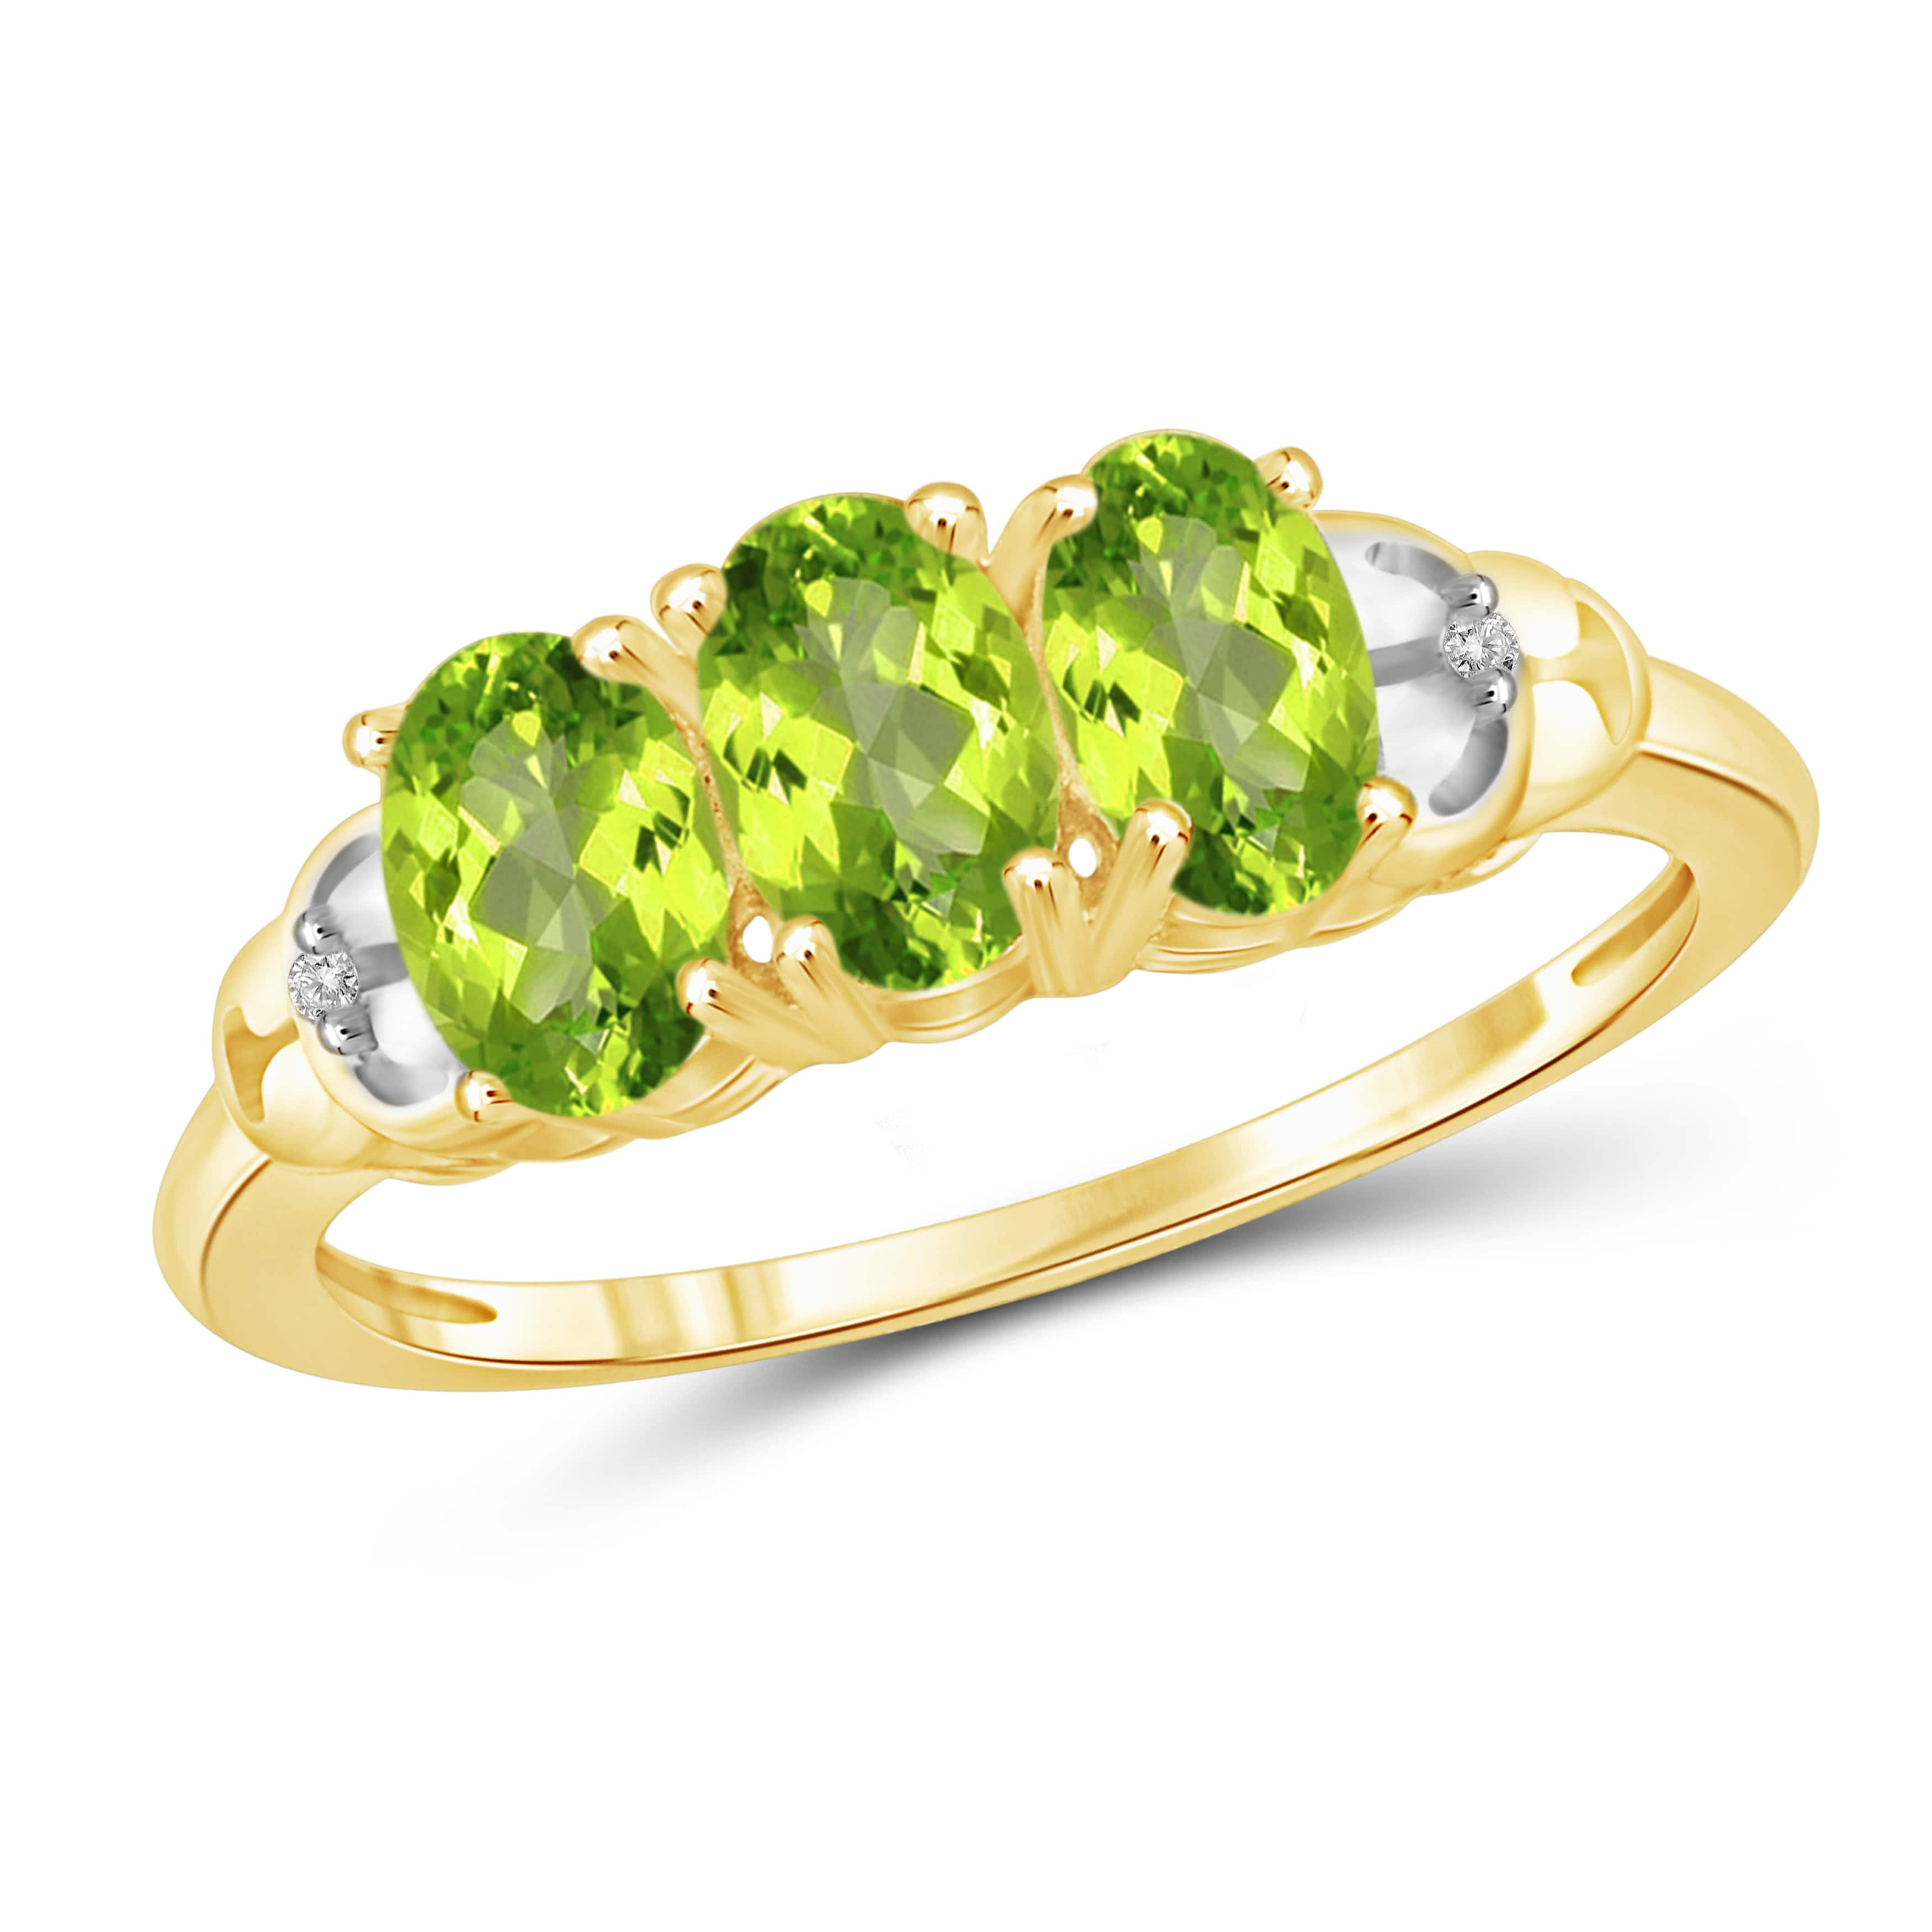 JewelonFire  Sterling Silver 1 1/2ct TW Peridot and Diamond Accent 3-stone Ring